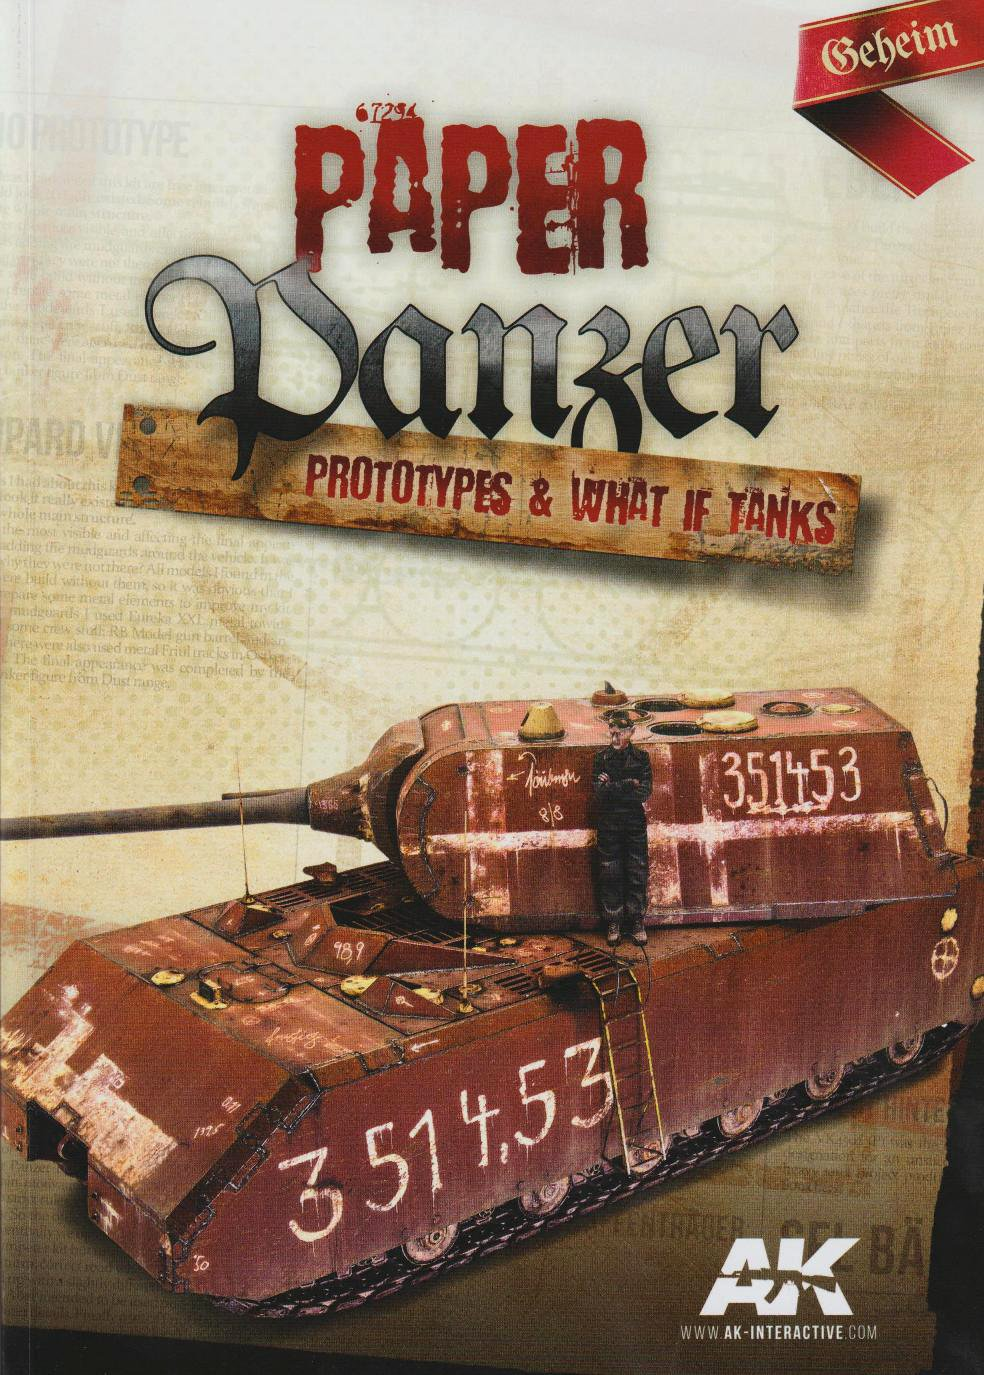 PAPER PANZER. Prototypes & What If Tanks. AK Interactives. 1808021228169210115831520